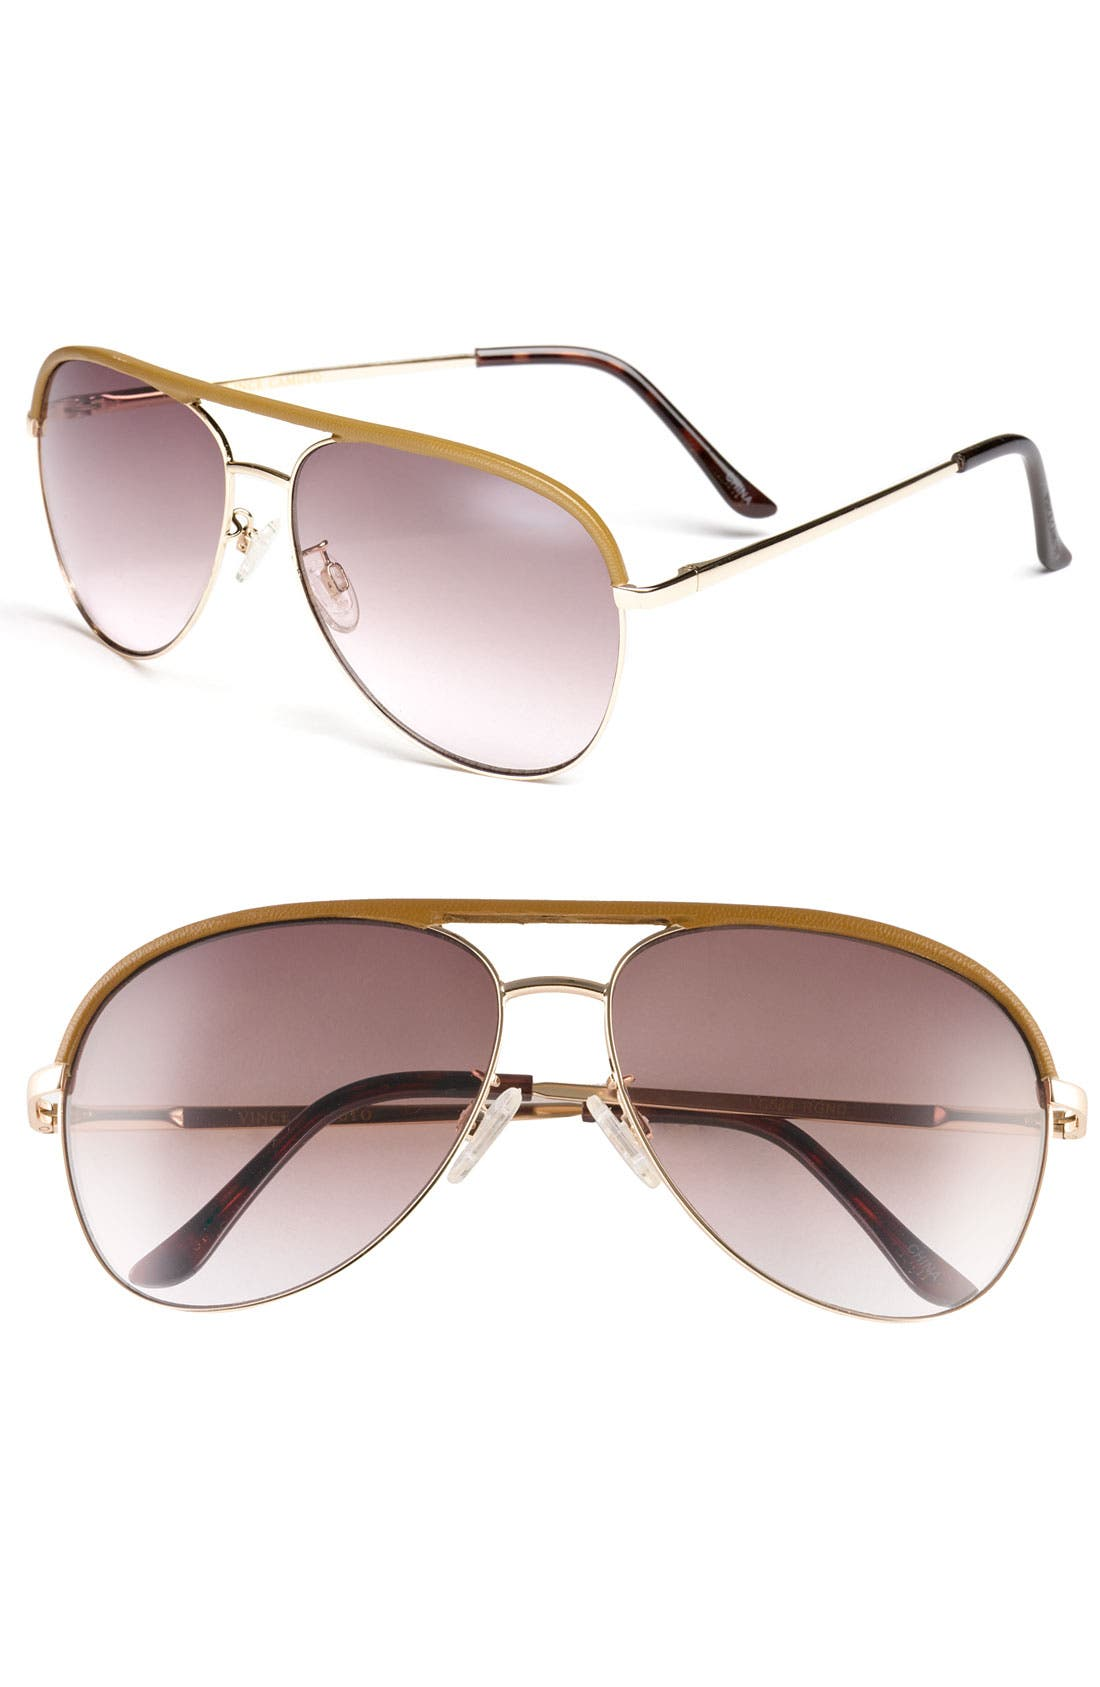 Main Image - Vince Camuto 60mm Metal & Leather Aviator Sunglasses